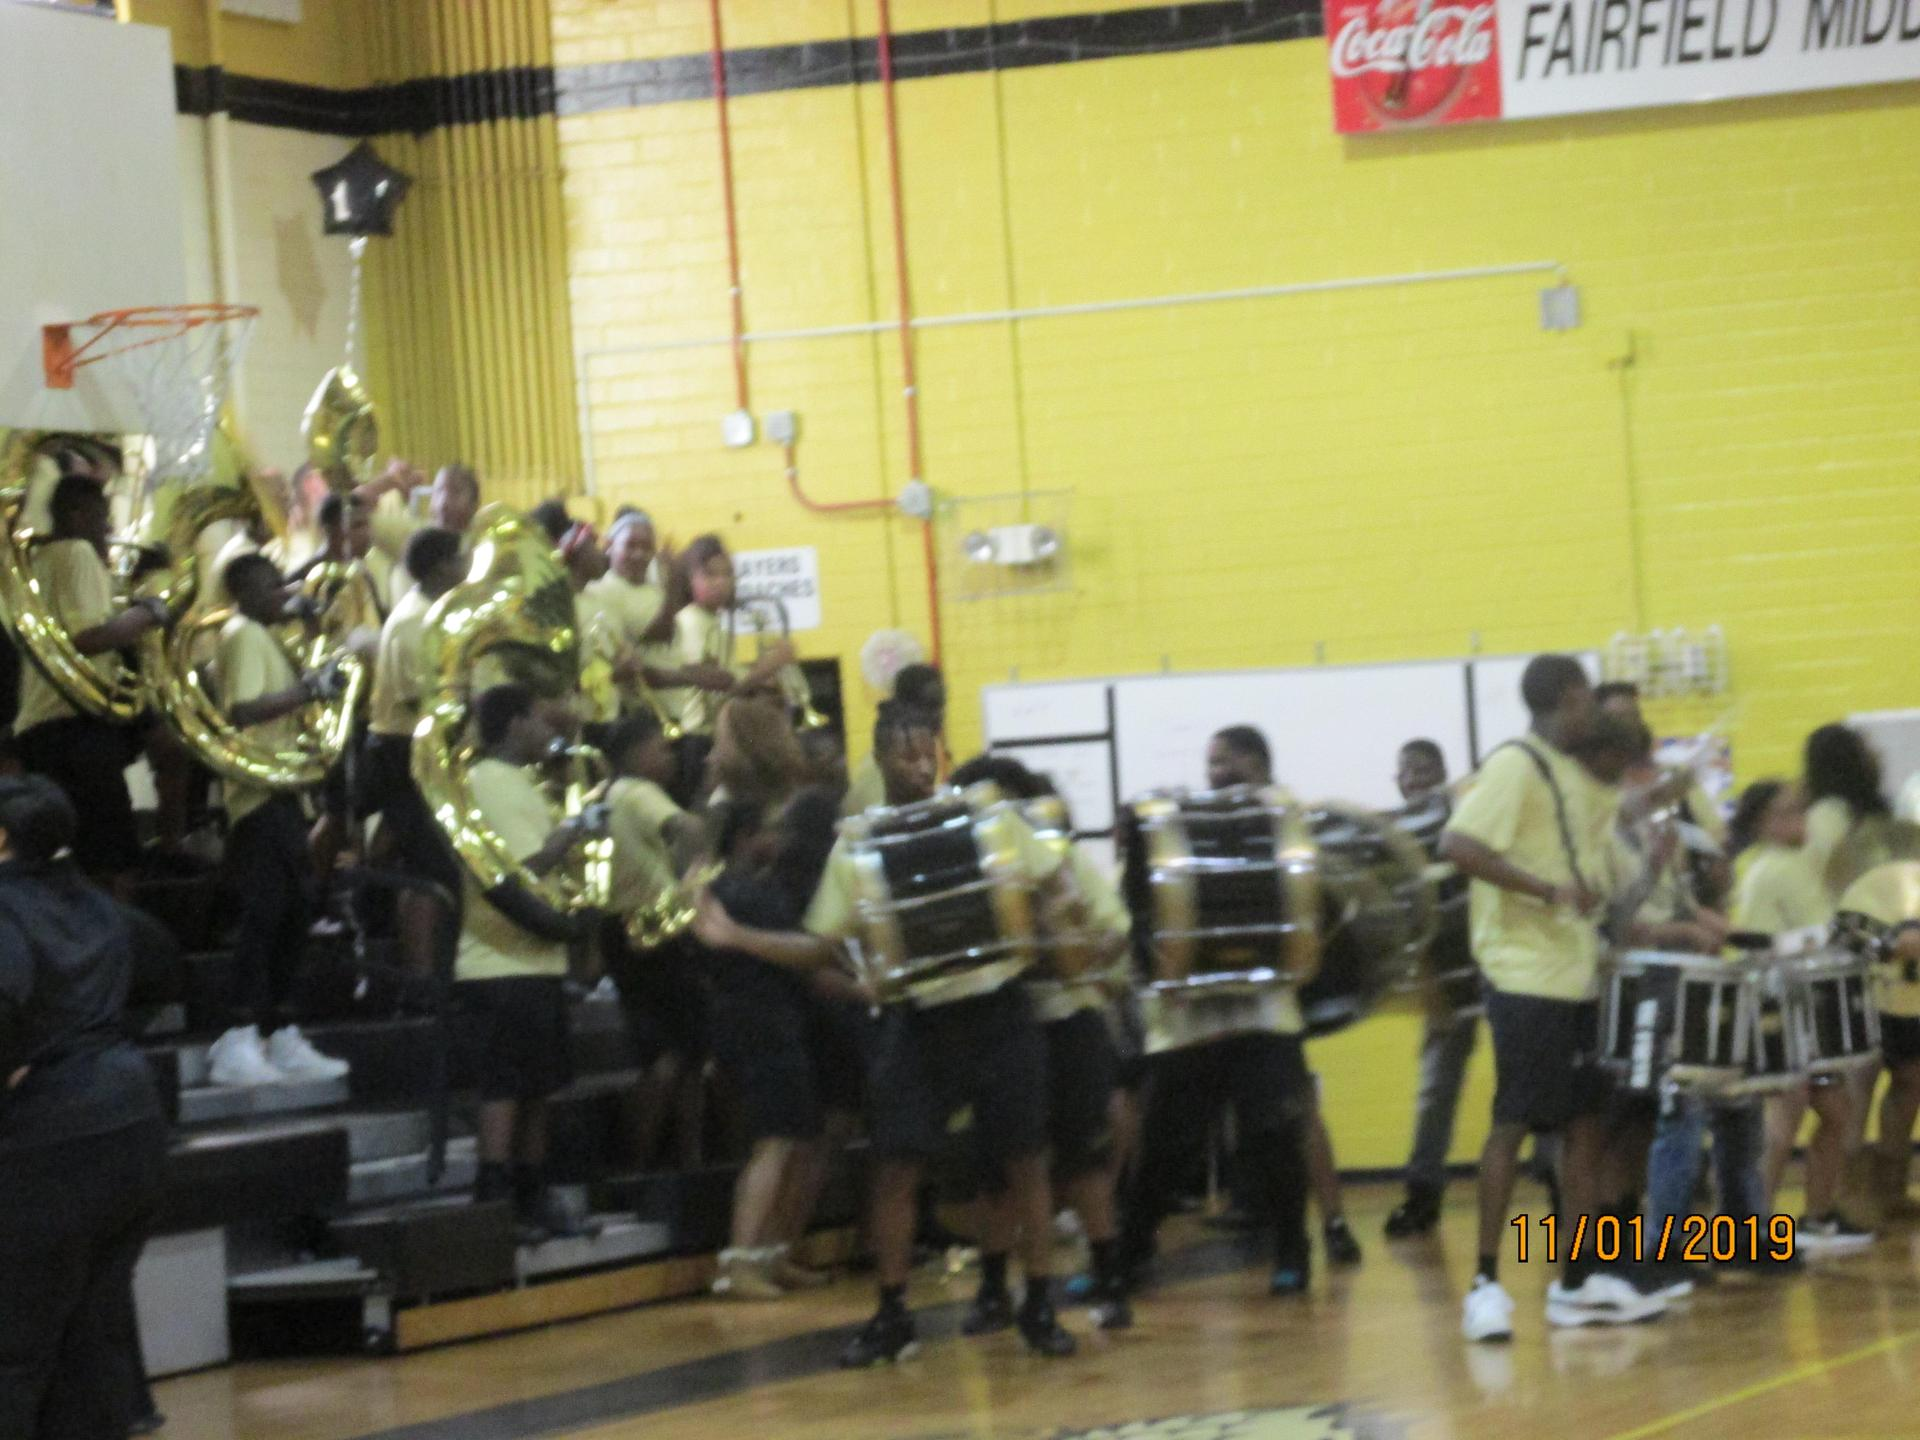 Fairfield Central High School Band at Pep Rally